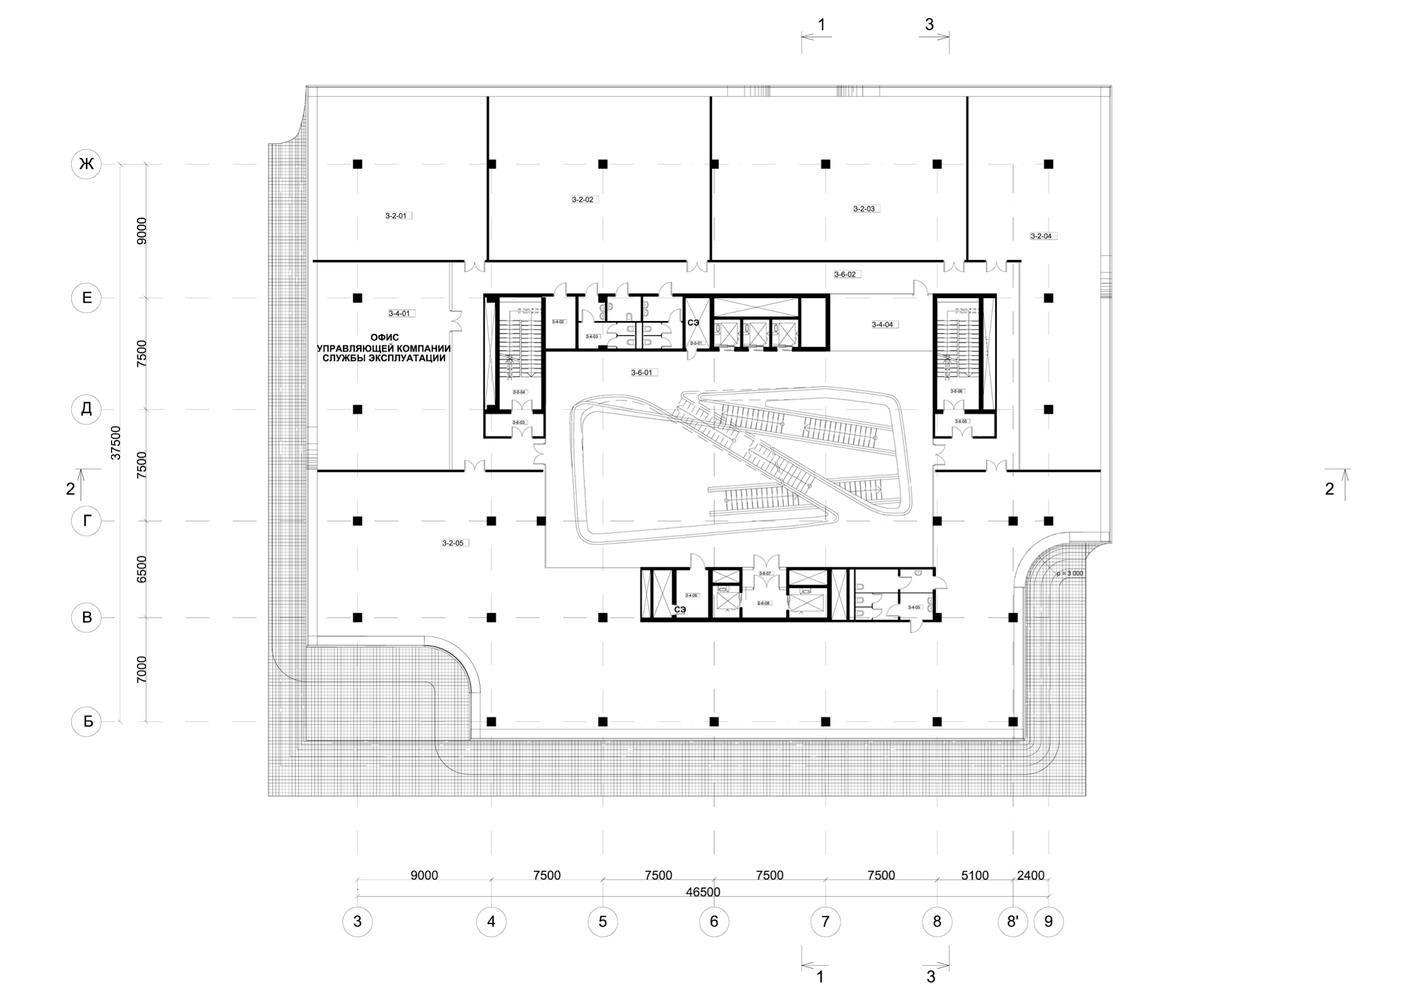 Office space plans Bank Dominion Office Building Zaha Hadid Architects Third Floor Plan Gallery Of Dominion Office Building Zaha Hadid Architects 13